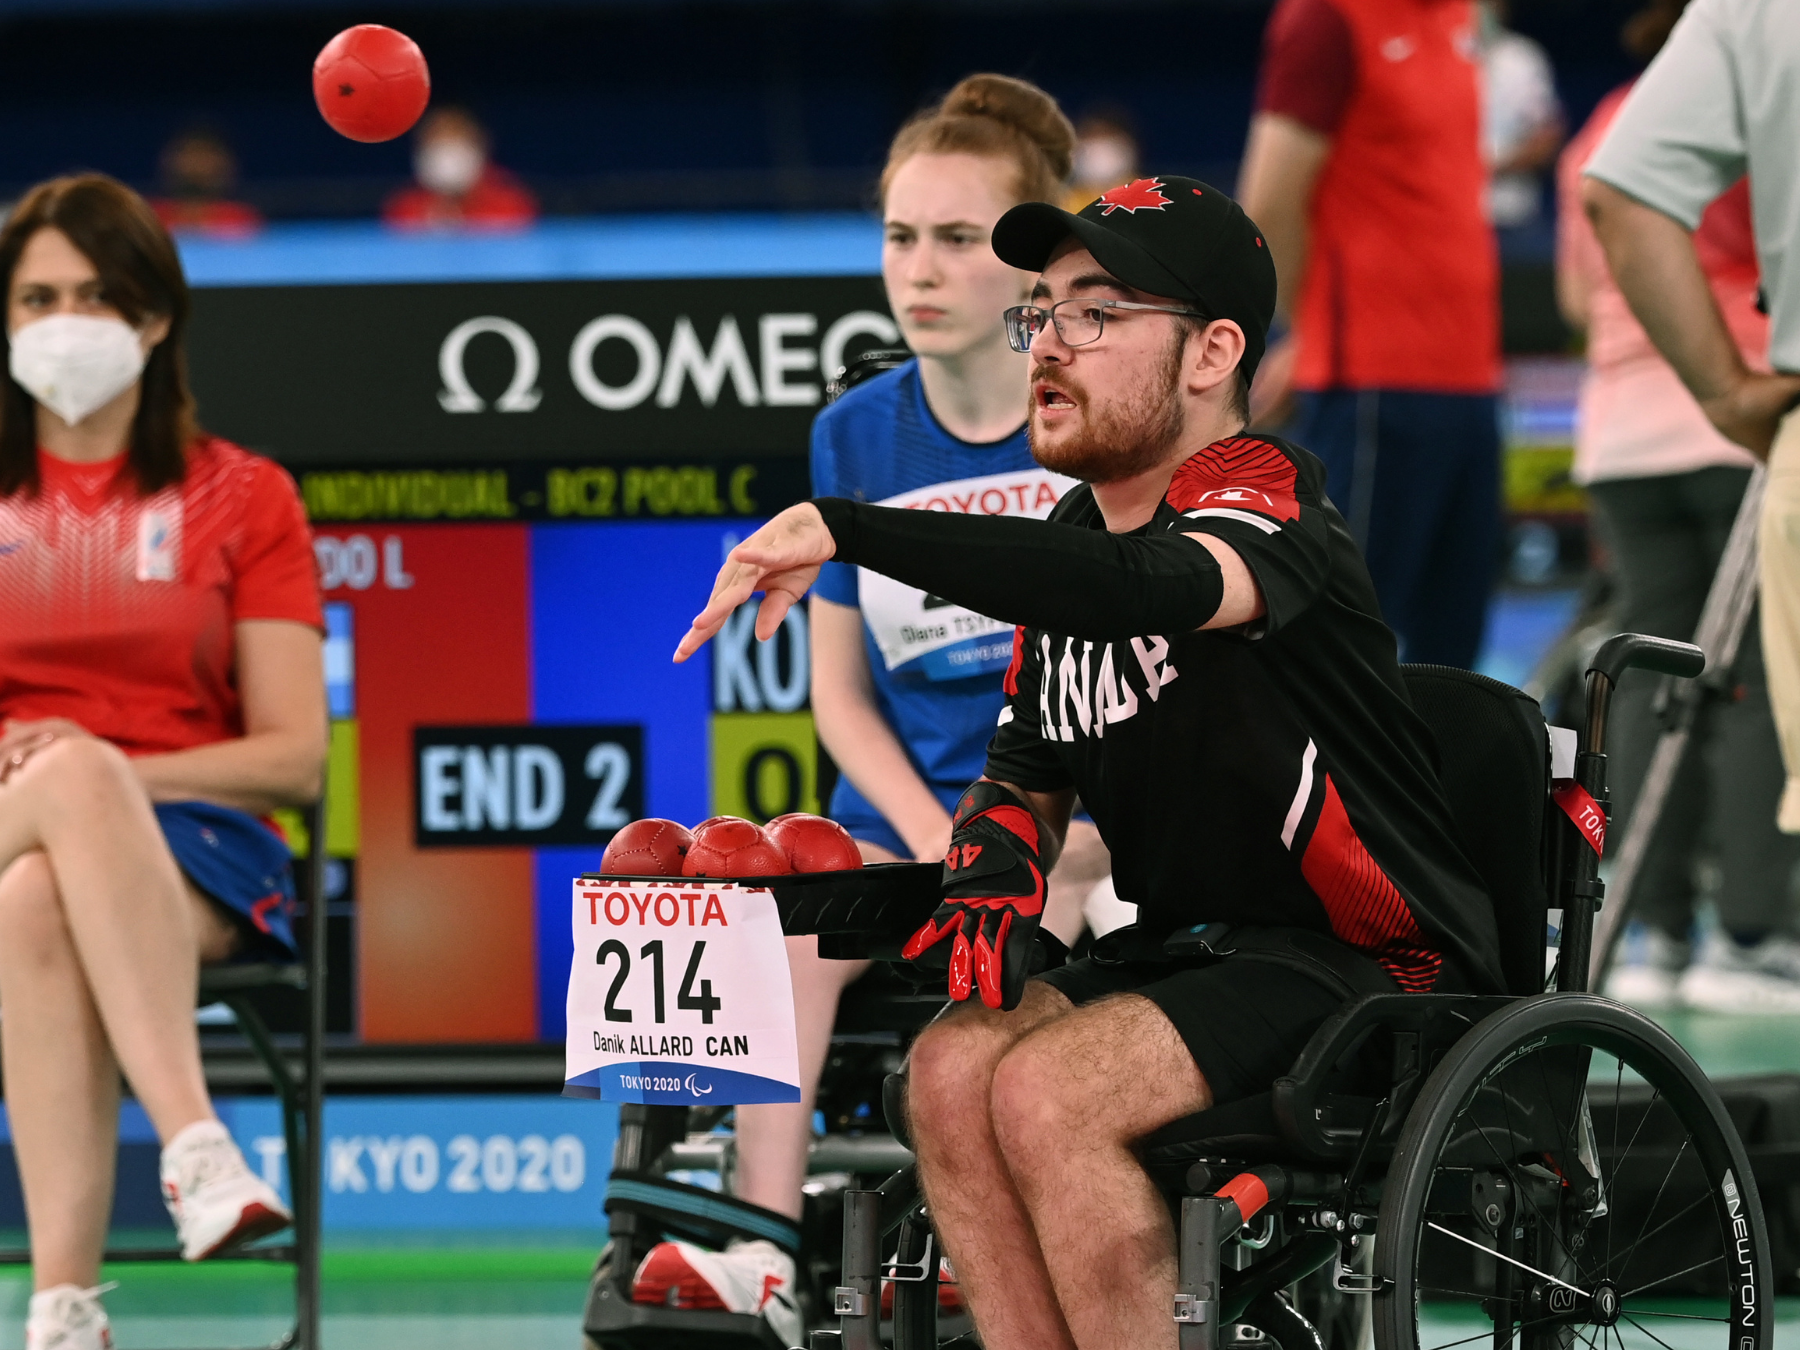 Photo Credit: Canadian Paralympic Committee